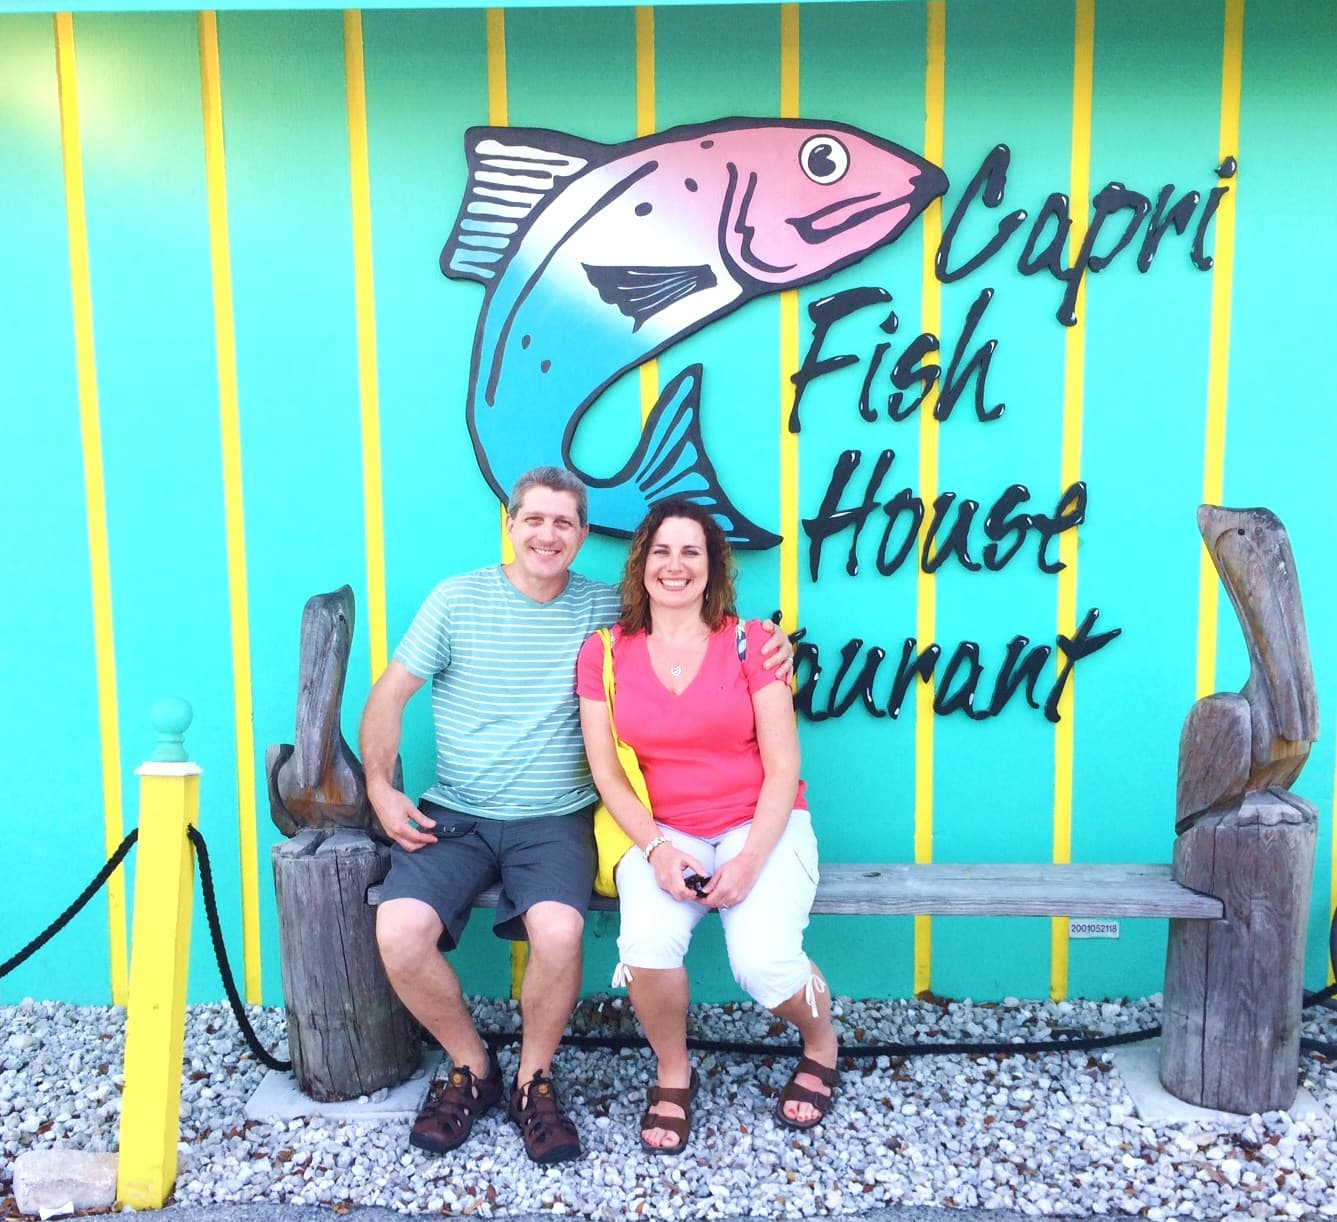 Capri Fish House Seafood Restaurant in Naples, FL